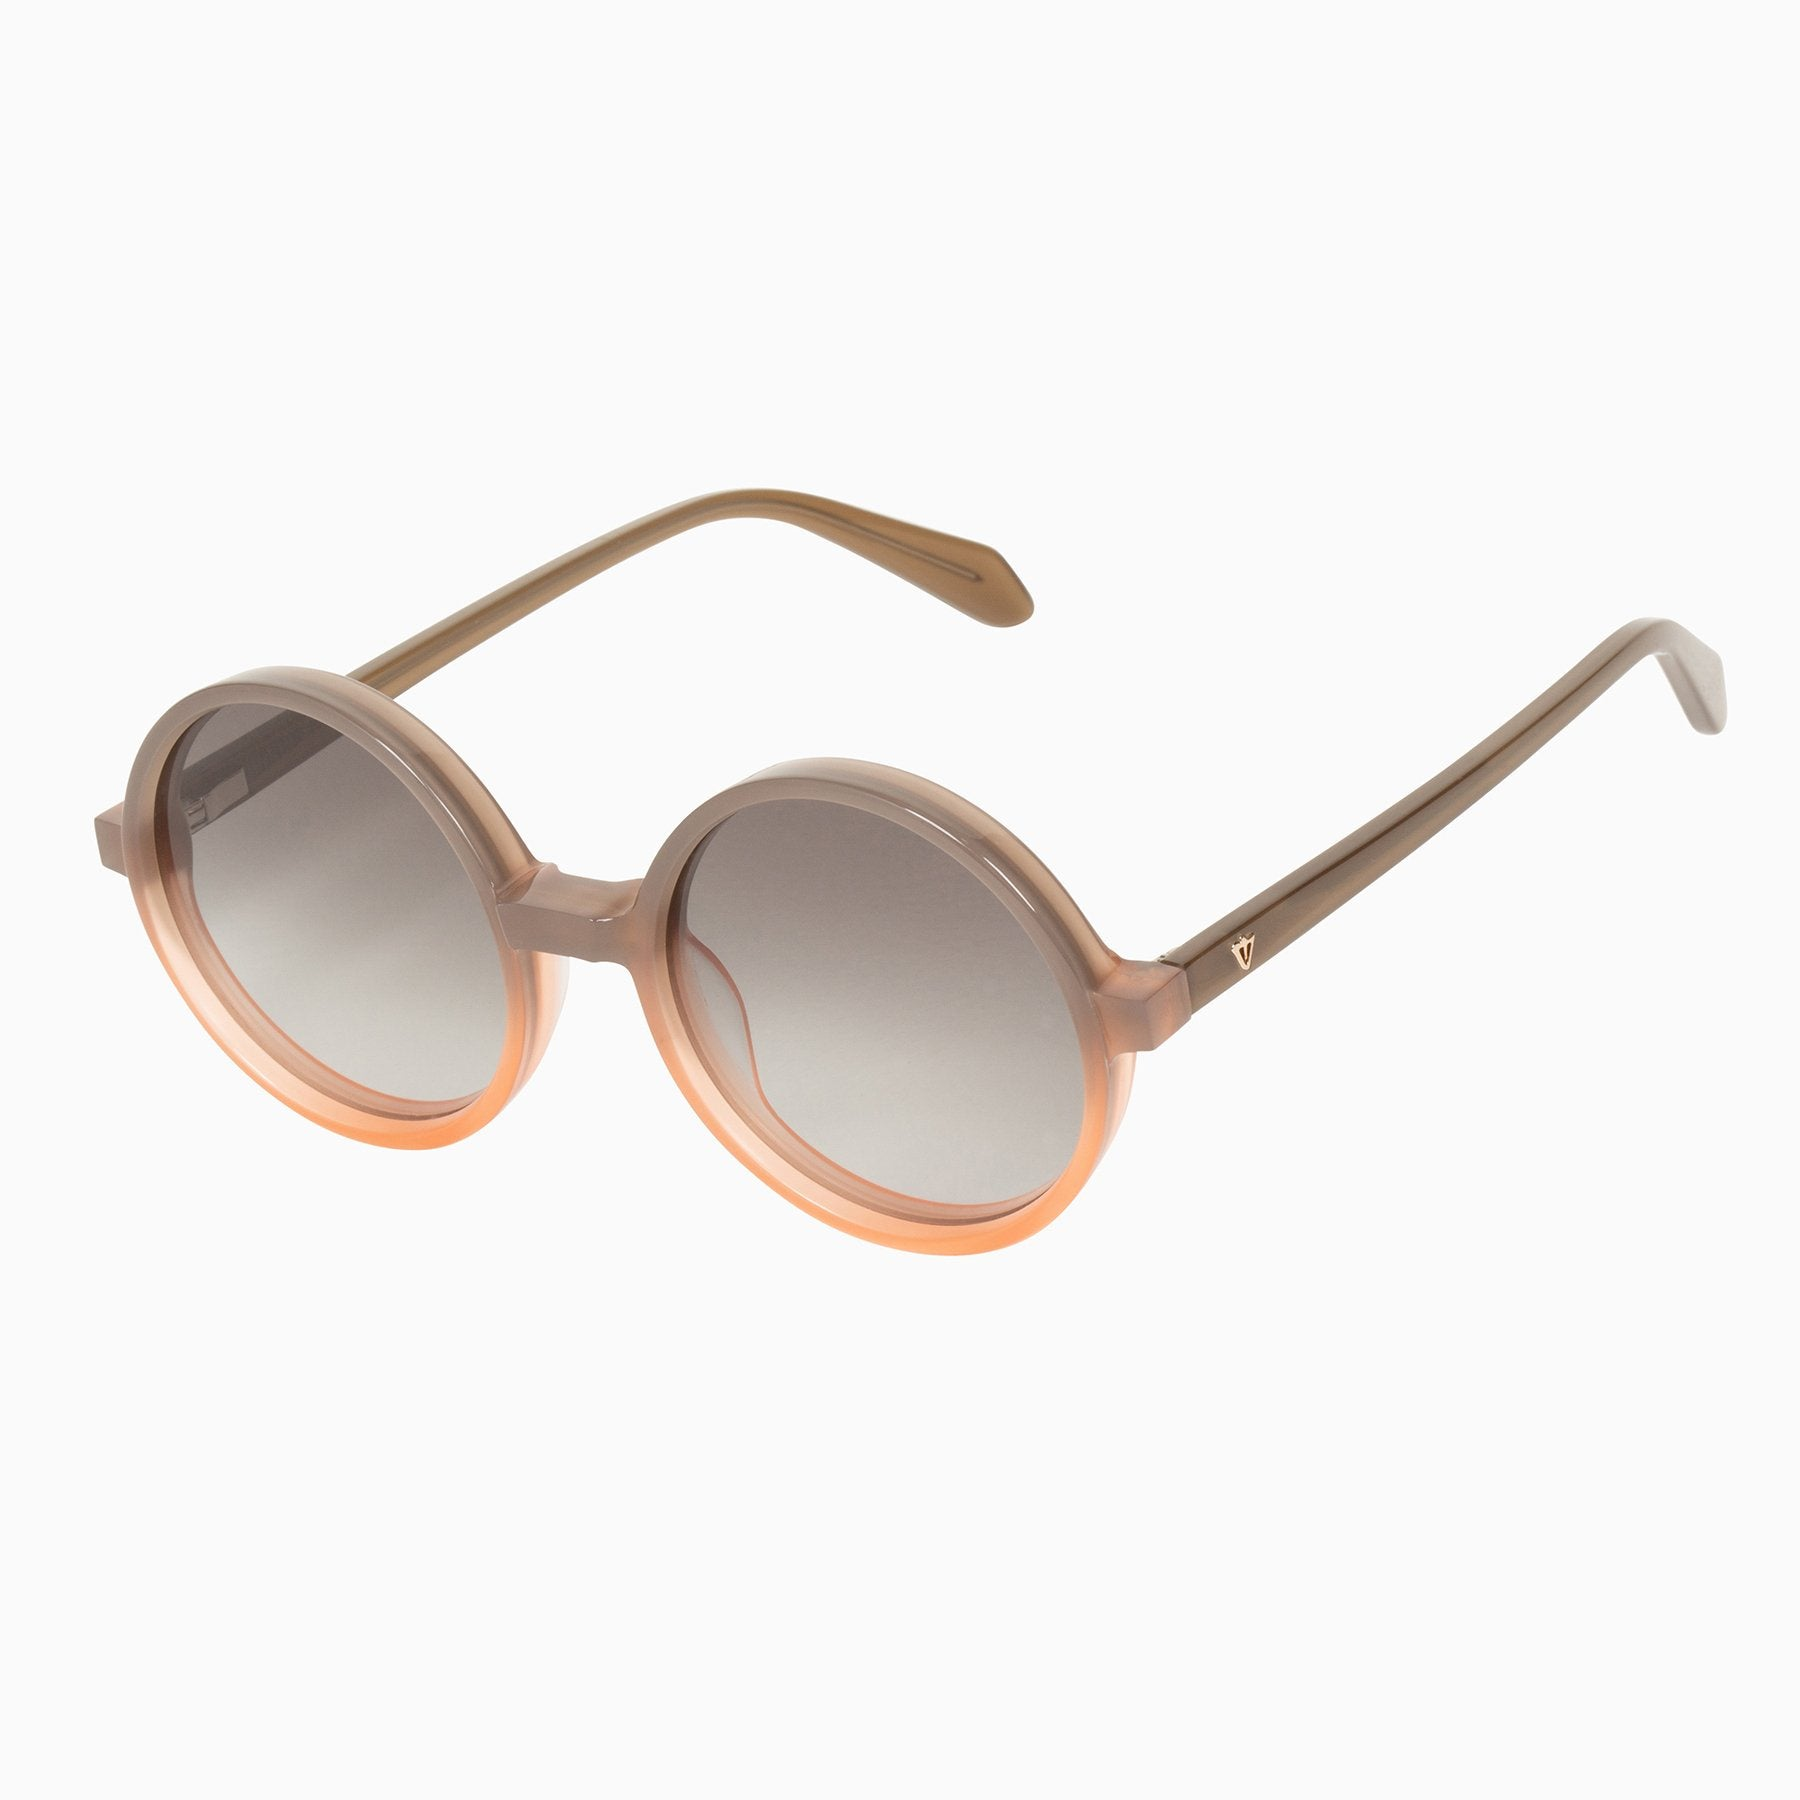 Prospect Sunglasses / Tan Fade to Musk